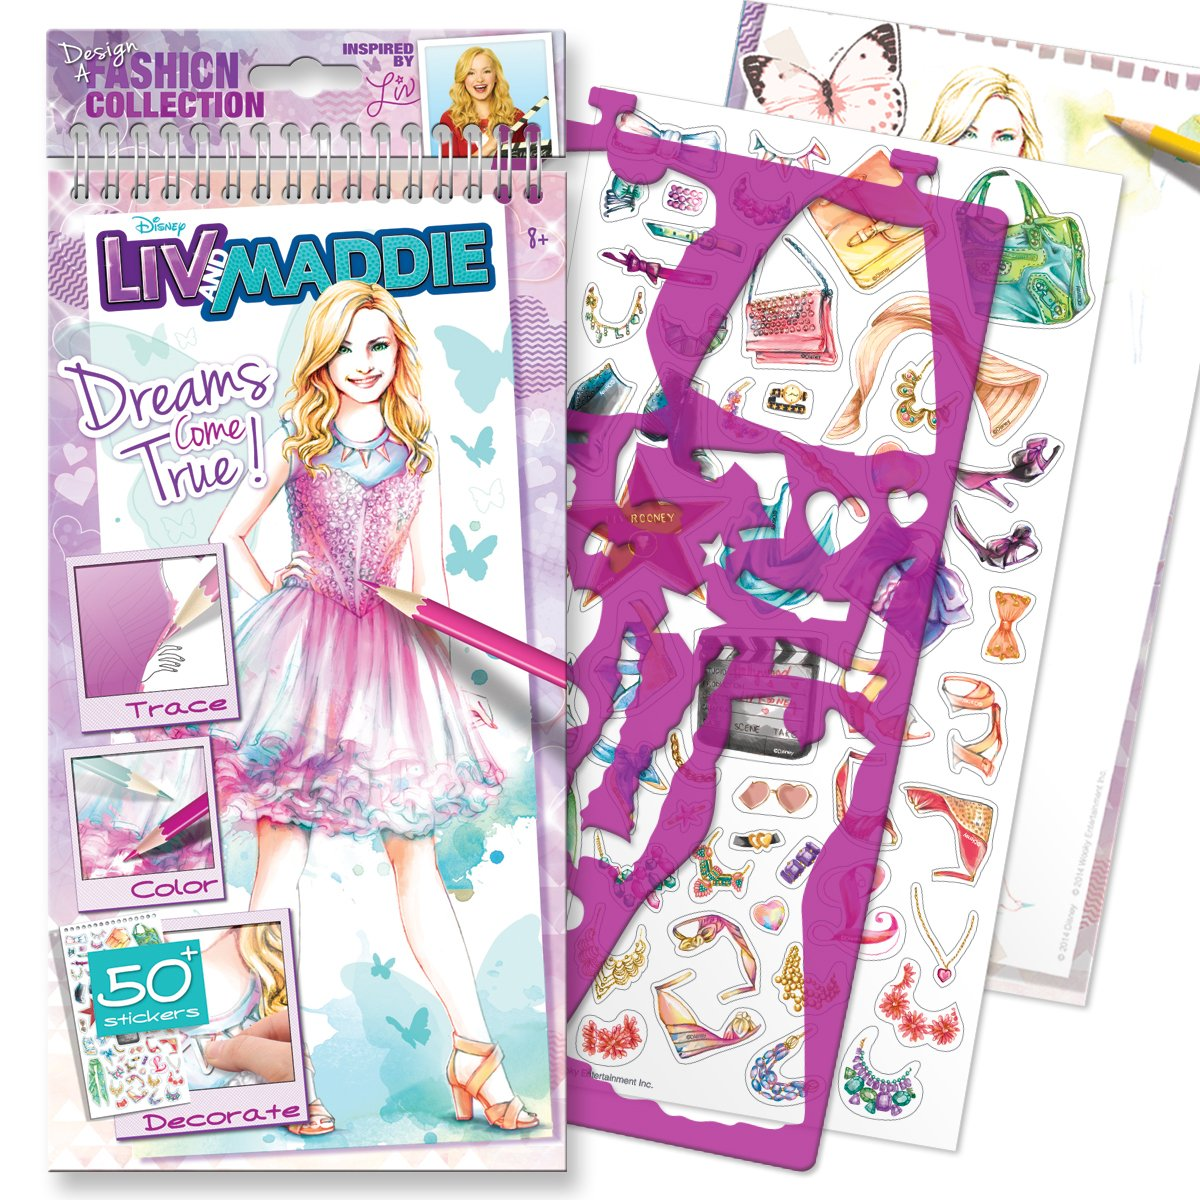 Printable coloring pages liv and maddie - Amazon Com Style Me Up Disney Channel Liv And Maddie Dreams Come True Small Sketchbook Toys Games